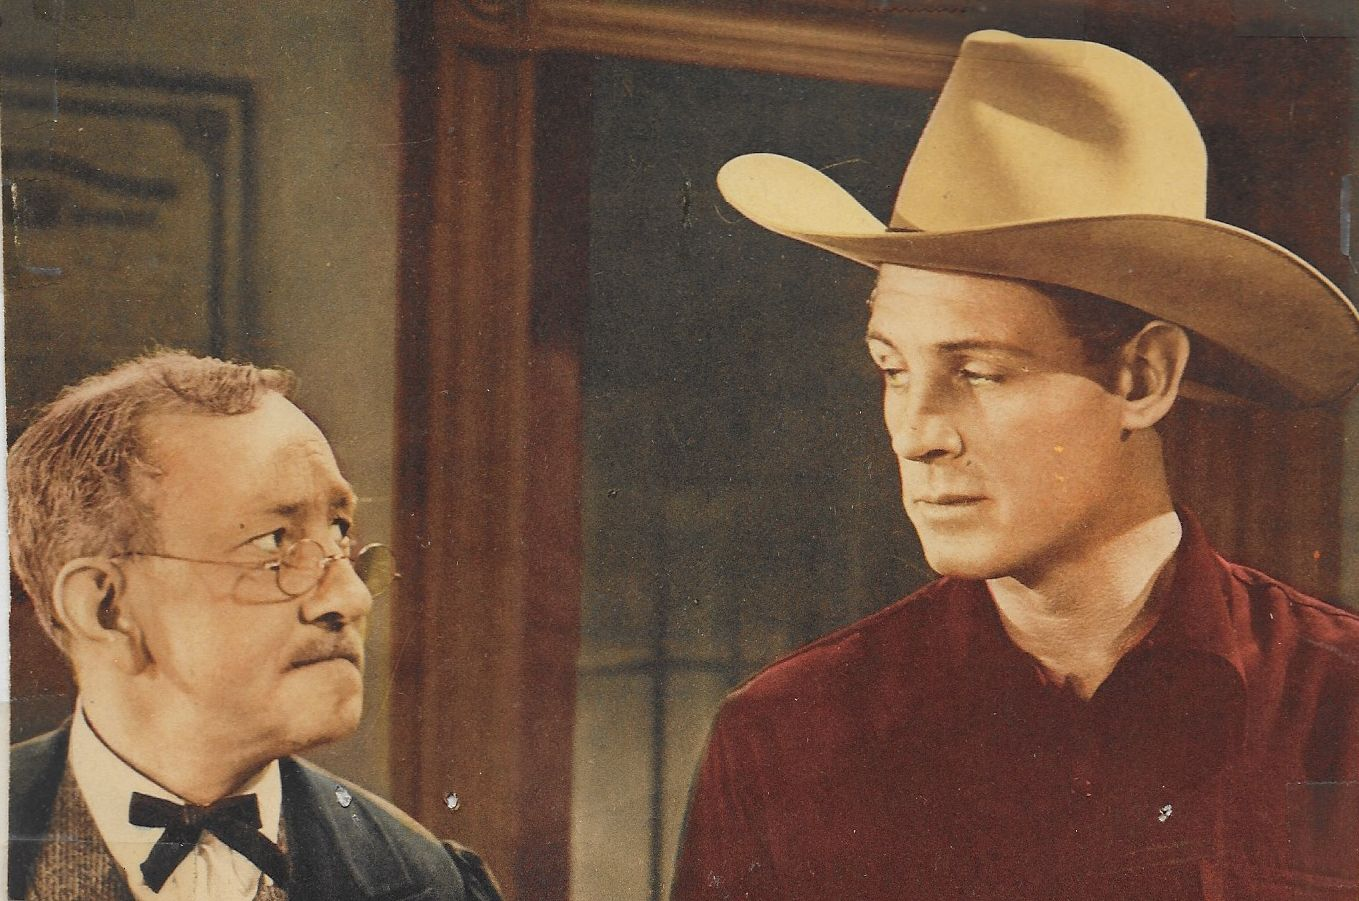 Robert Livingston and Emmett Lynn in The Laramie Trail (1944)